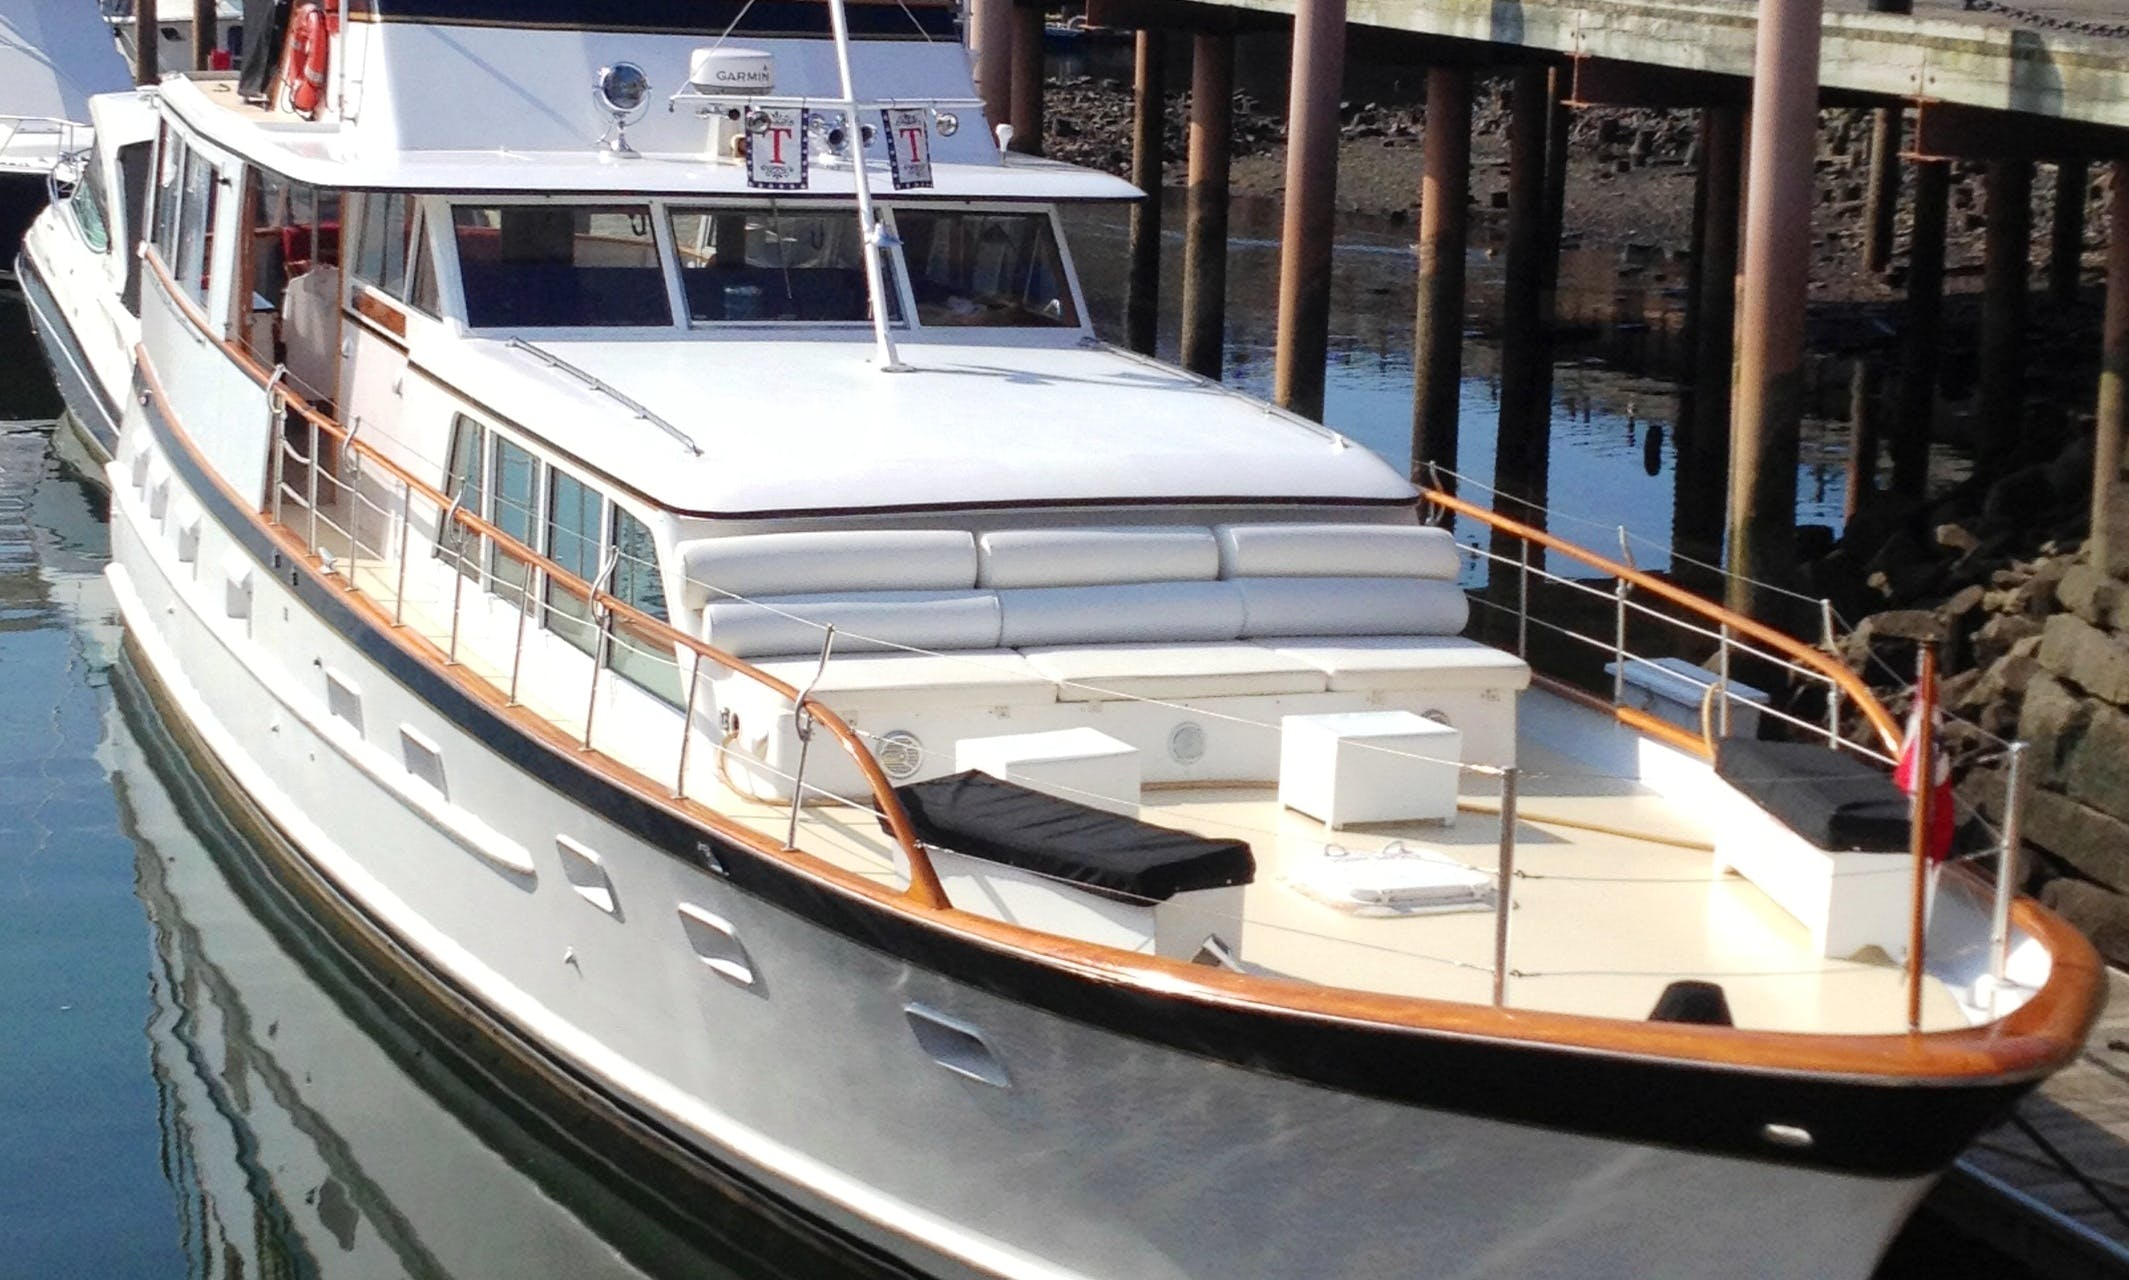 Charter a 64' Classic Berger Motor Yacht in Boston (up to 45 guests)